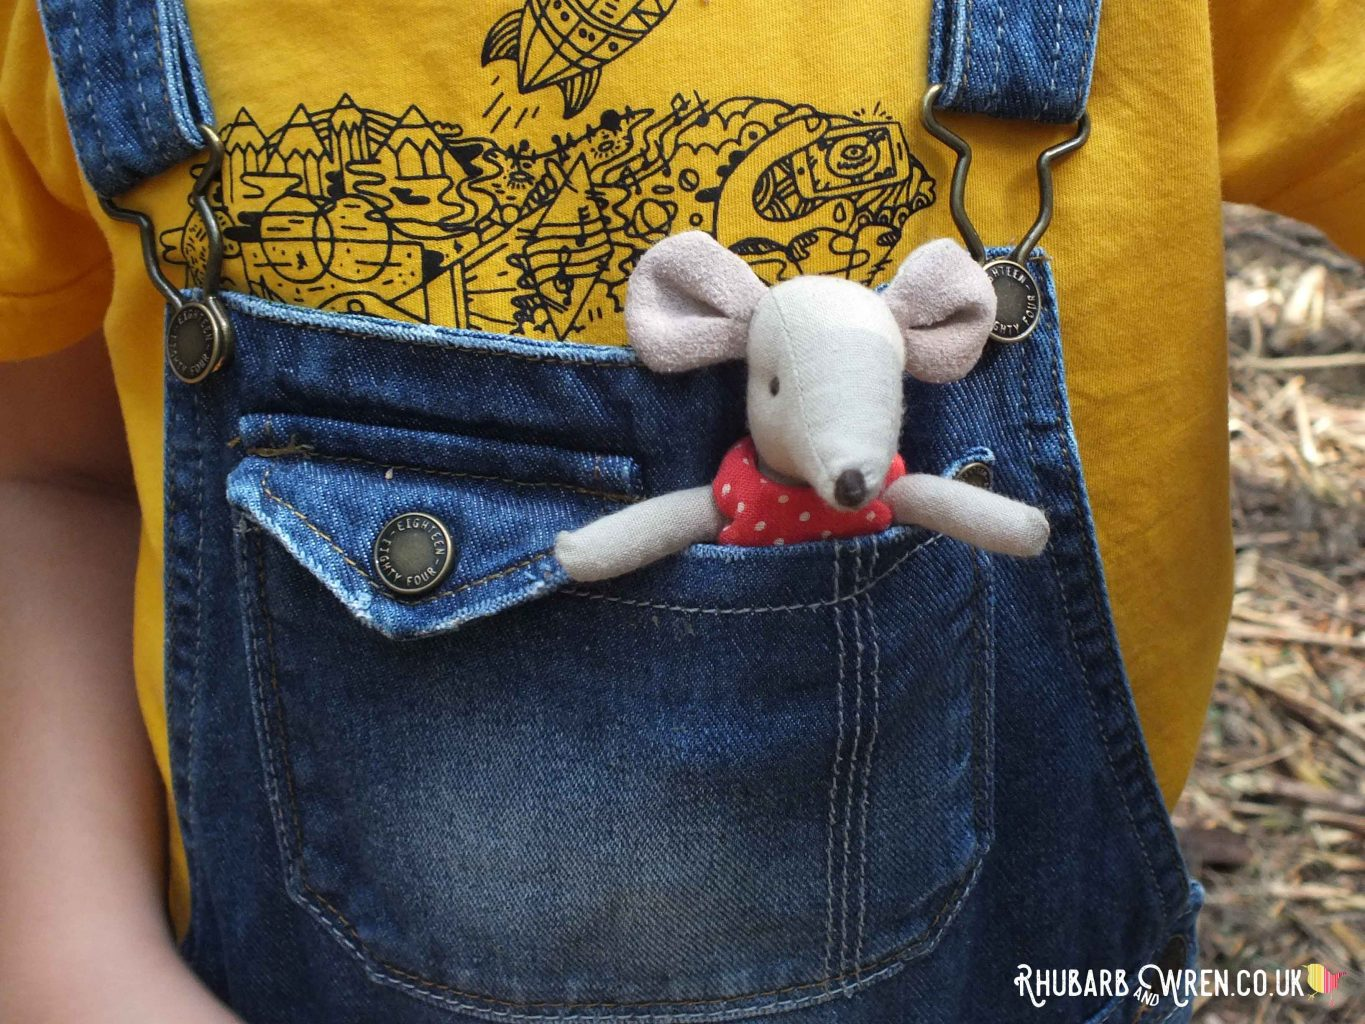 Maileg mouse toy in child's jeans dungaree pocket